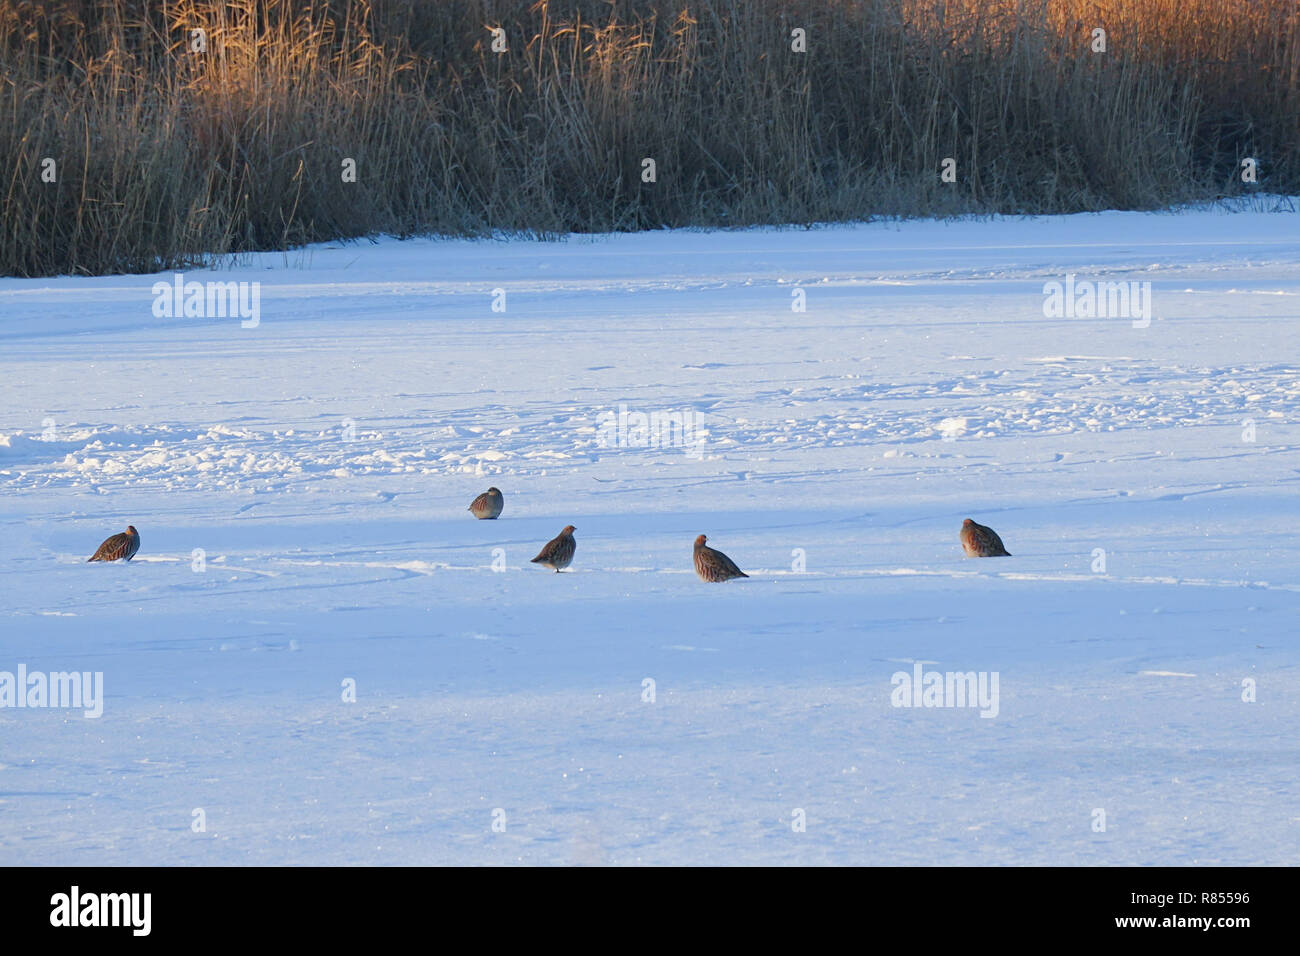 A flock of wild partridges sitting in the snow - Stock Image